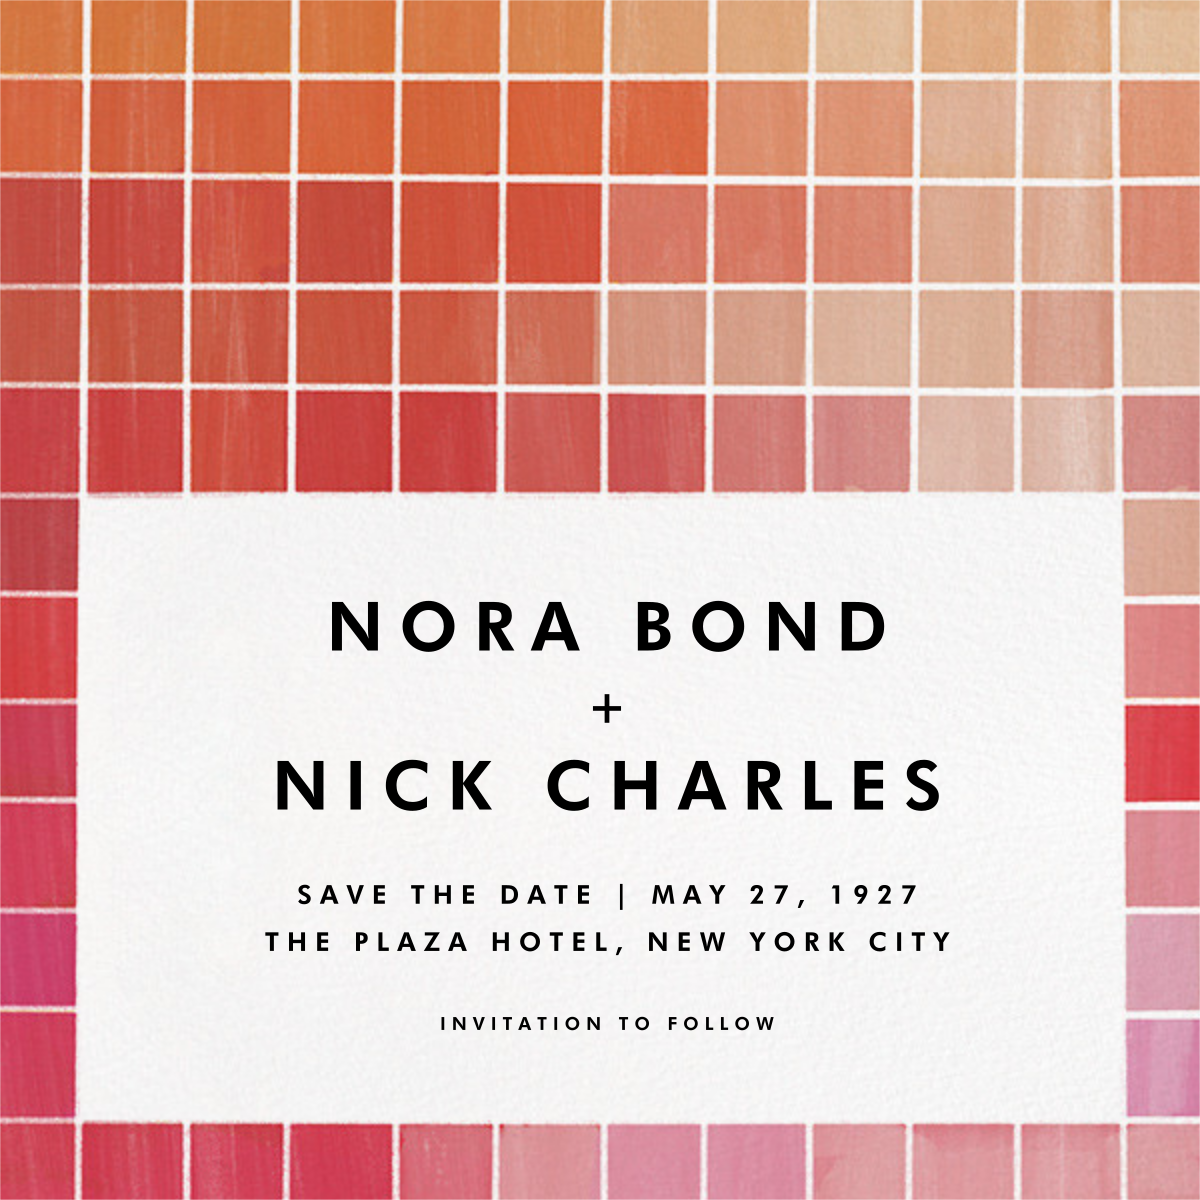 Chromatic - Red - Kelly Wearstler - Party save the dates